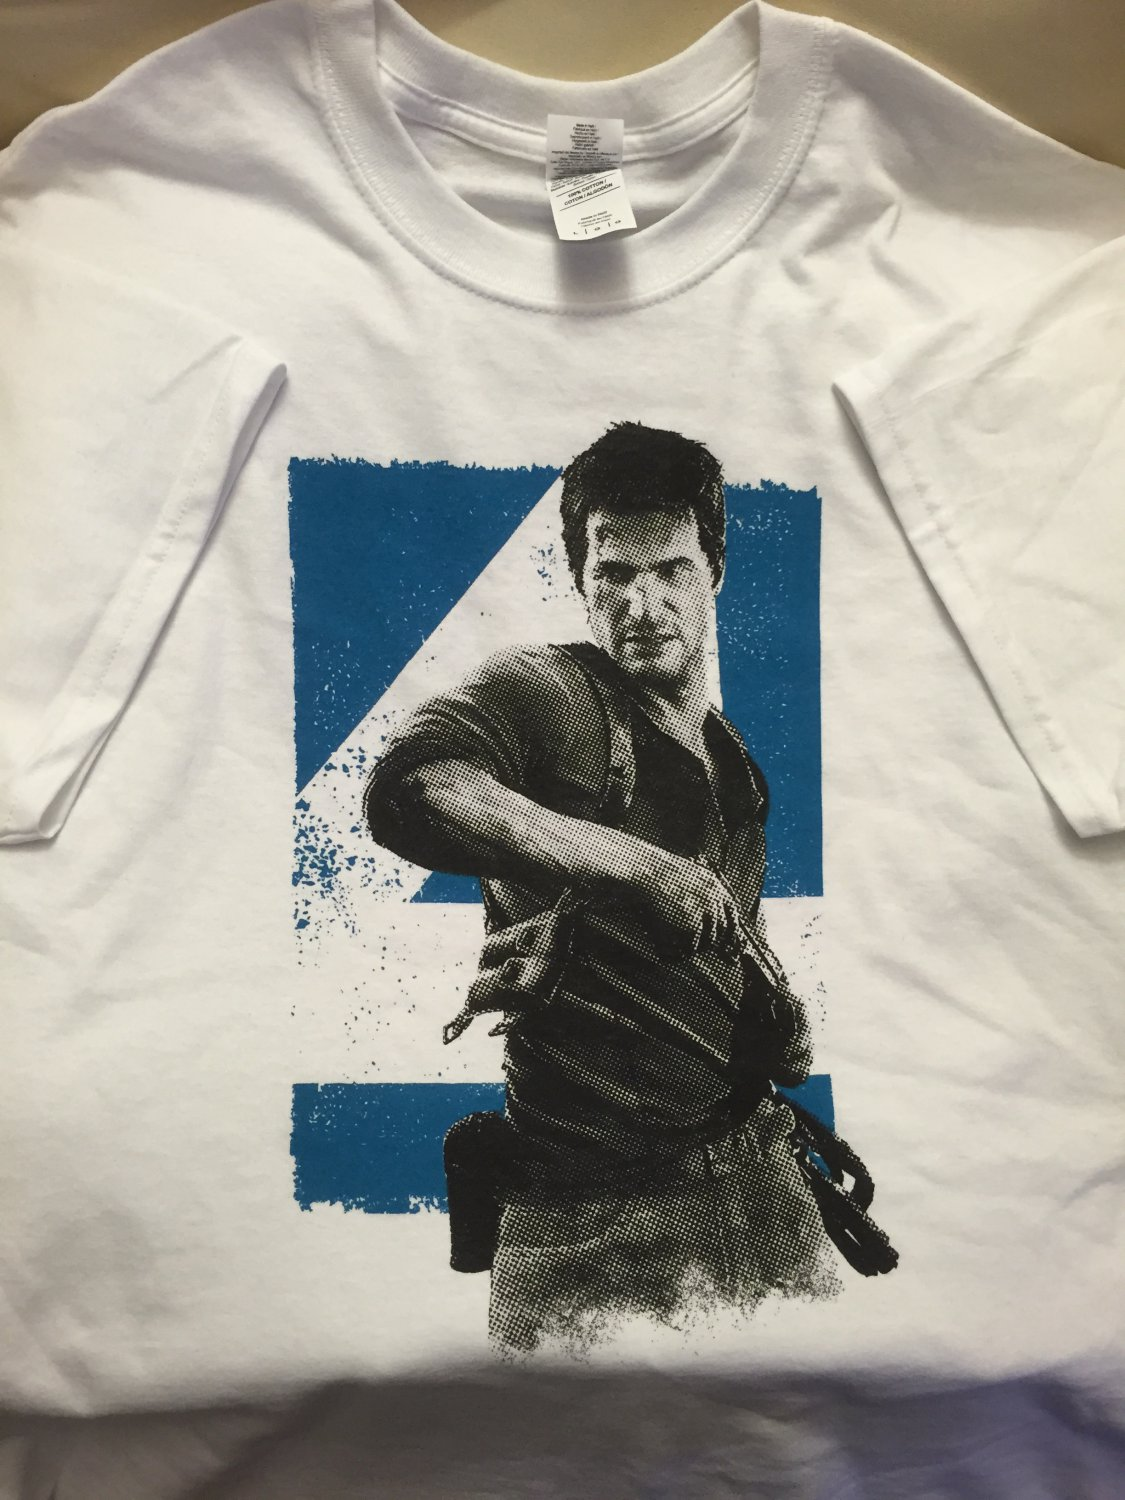 E3 2015 Exclusive Uncharted 4, A Thief's End T-shirt